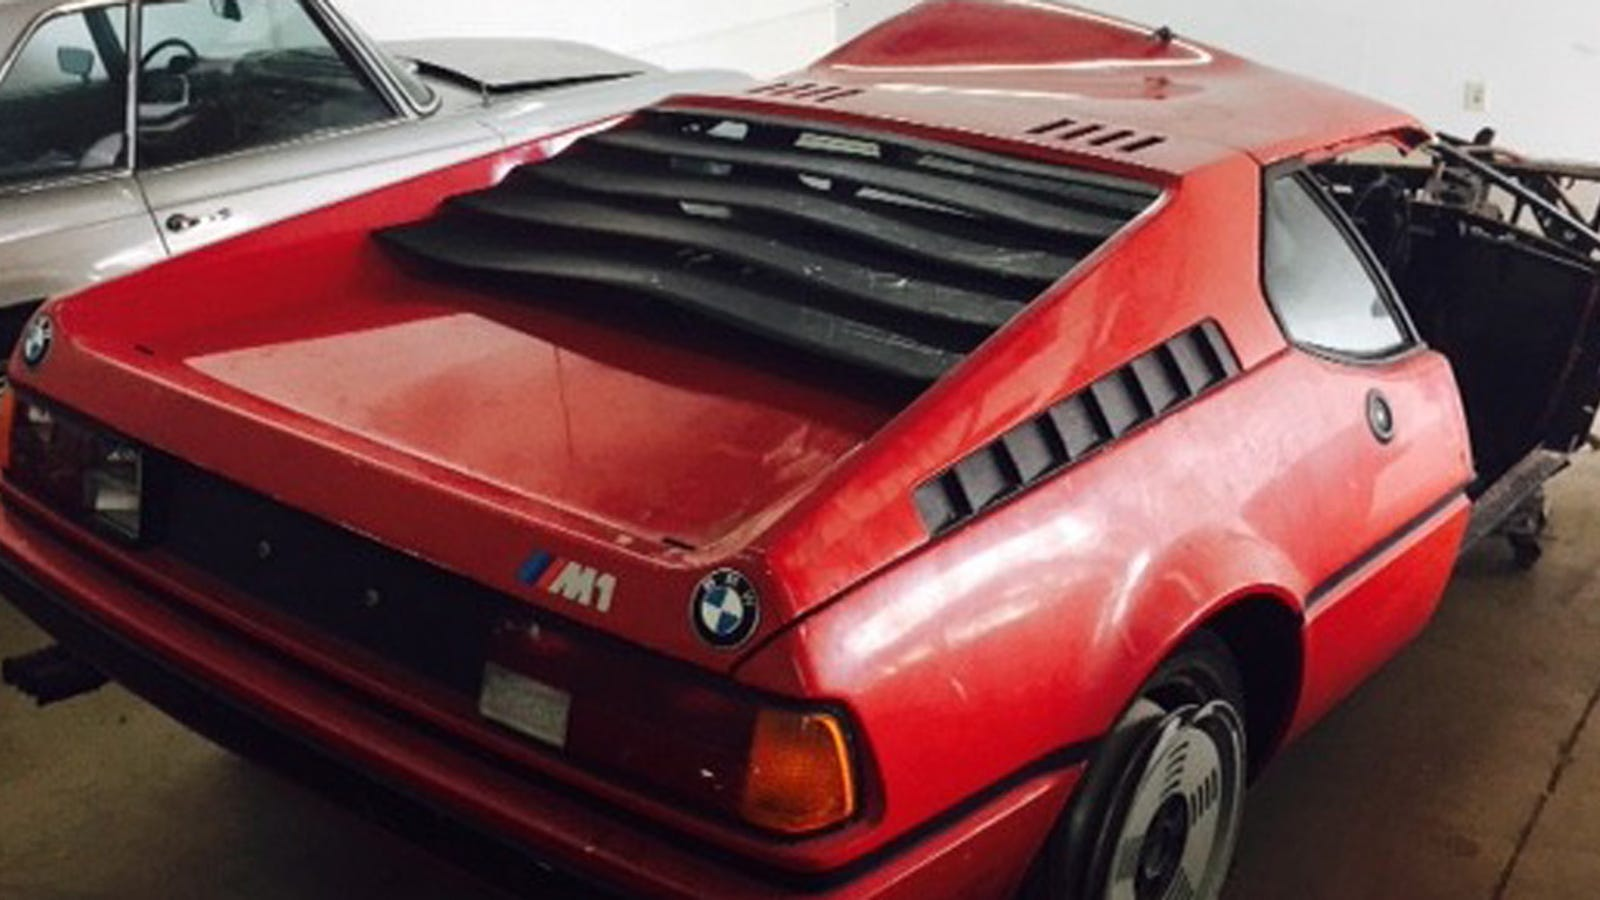 Somebody Bought This Totally Wrecked 1980 BMW M1, Maybe For $125,000